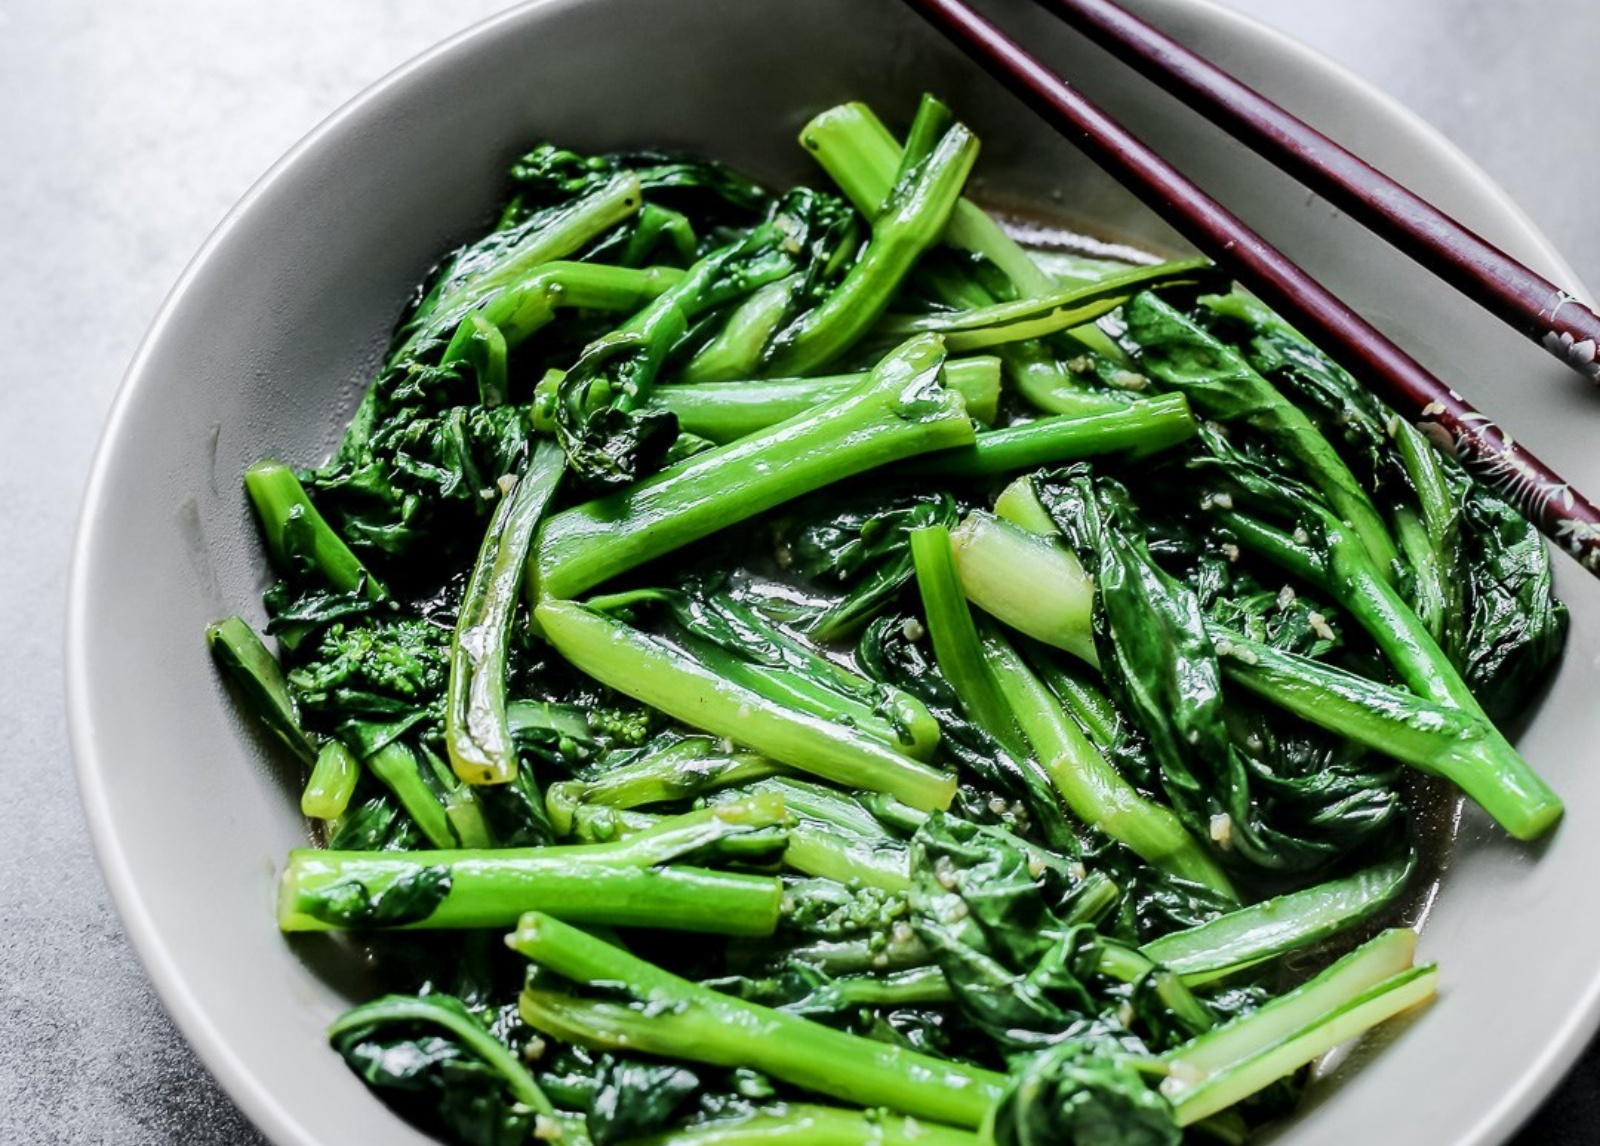 Vegan Stir-Fried Choy Sum with Minced Garlic